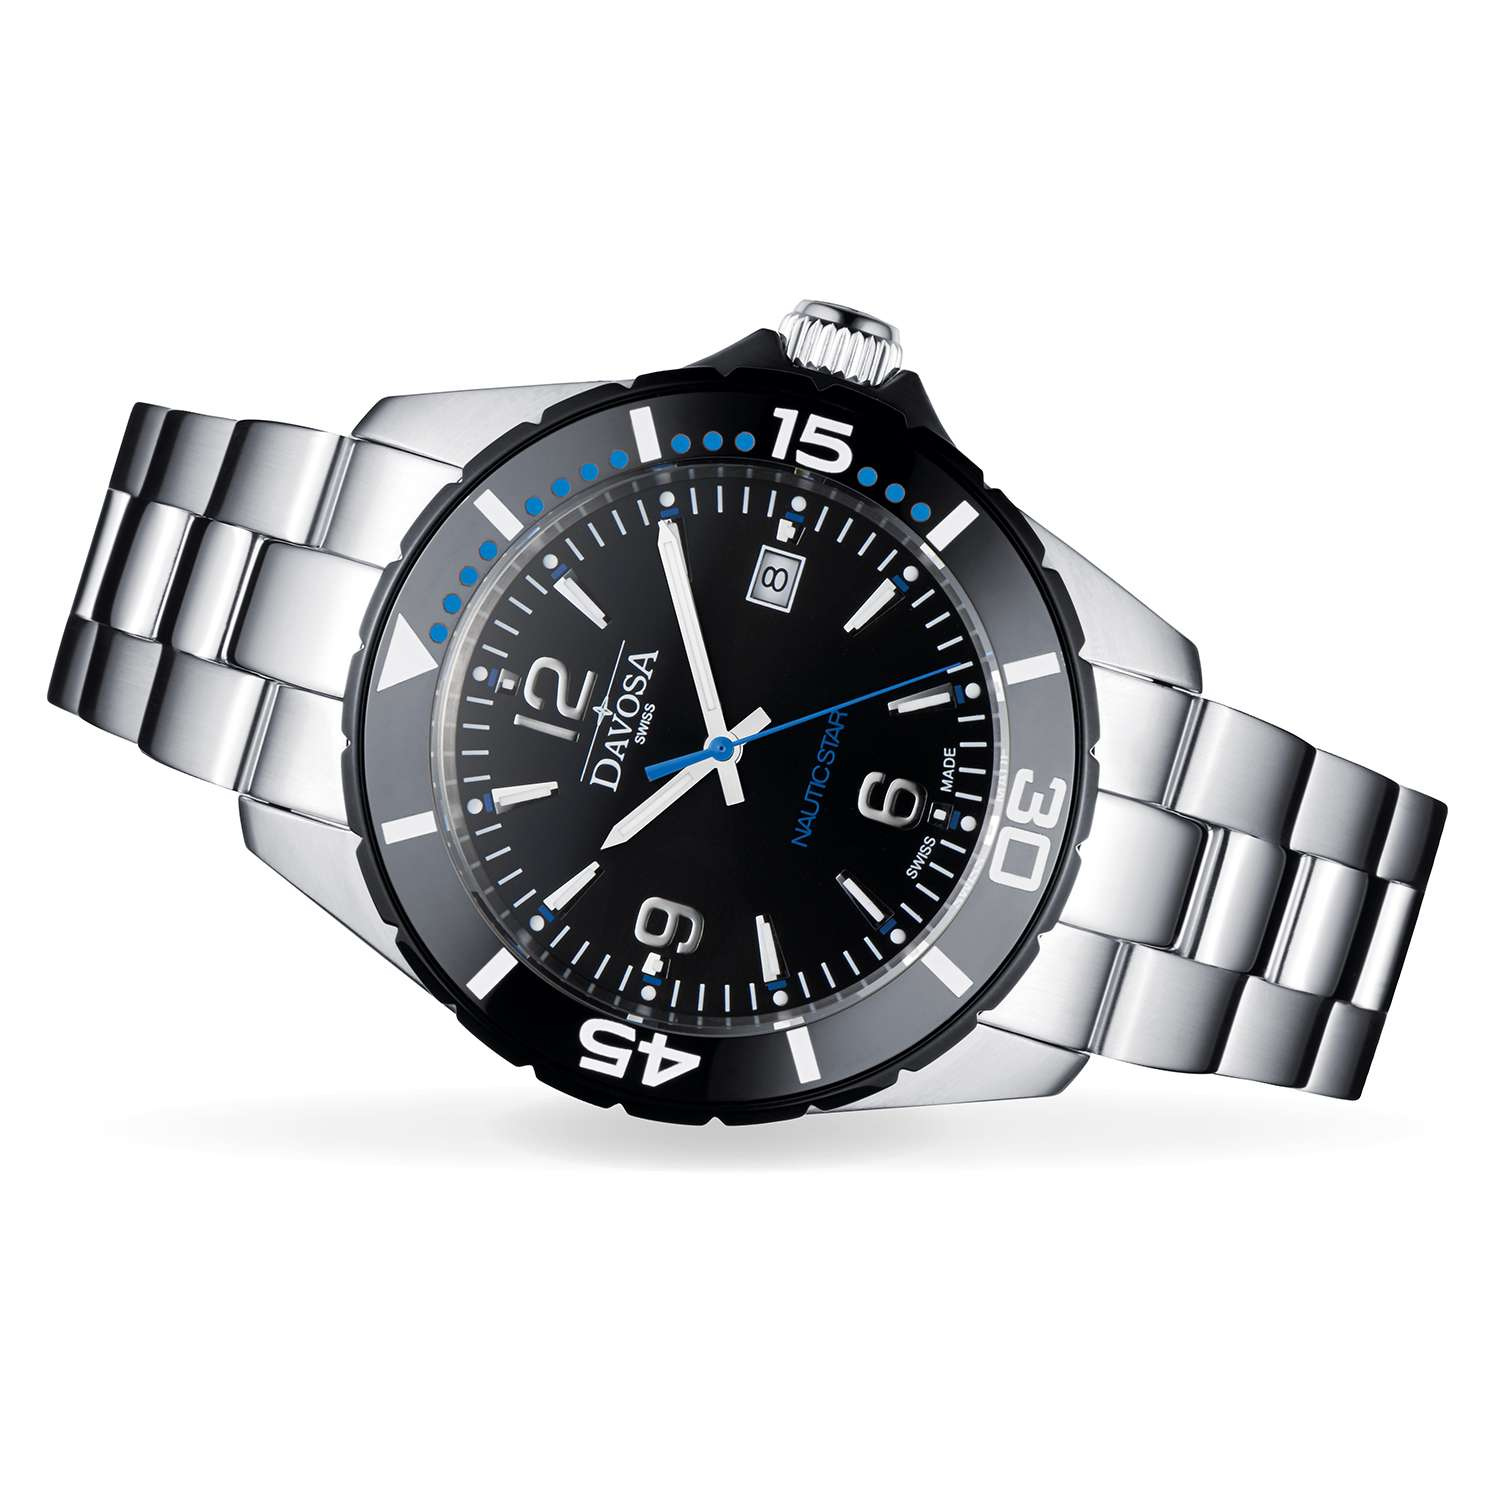 watch en corporation left seiko products astron el brands executive watches global line